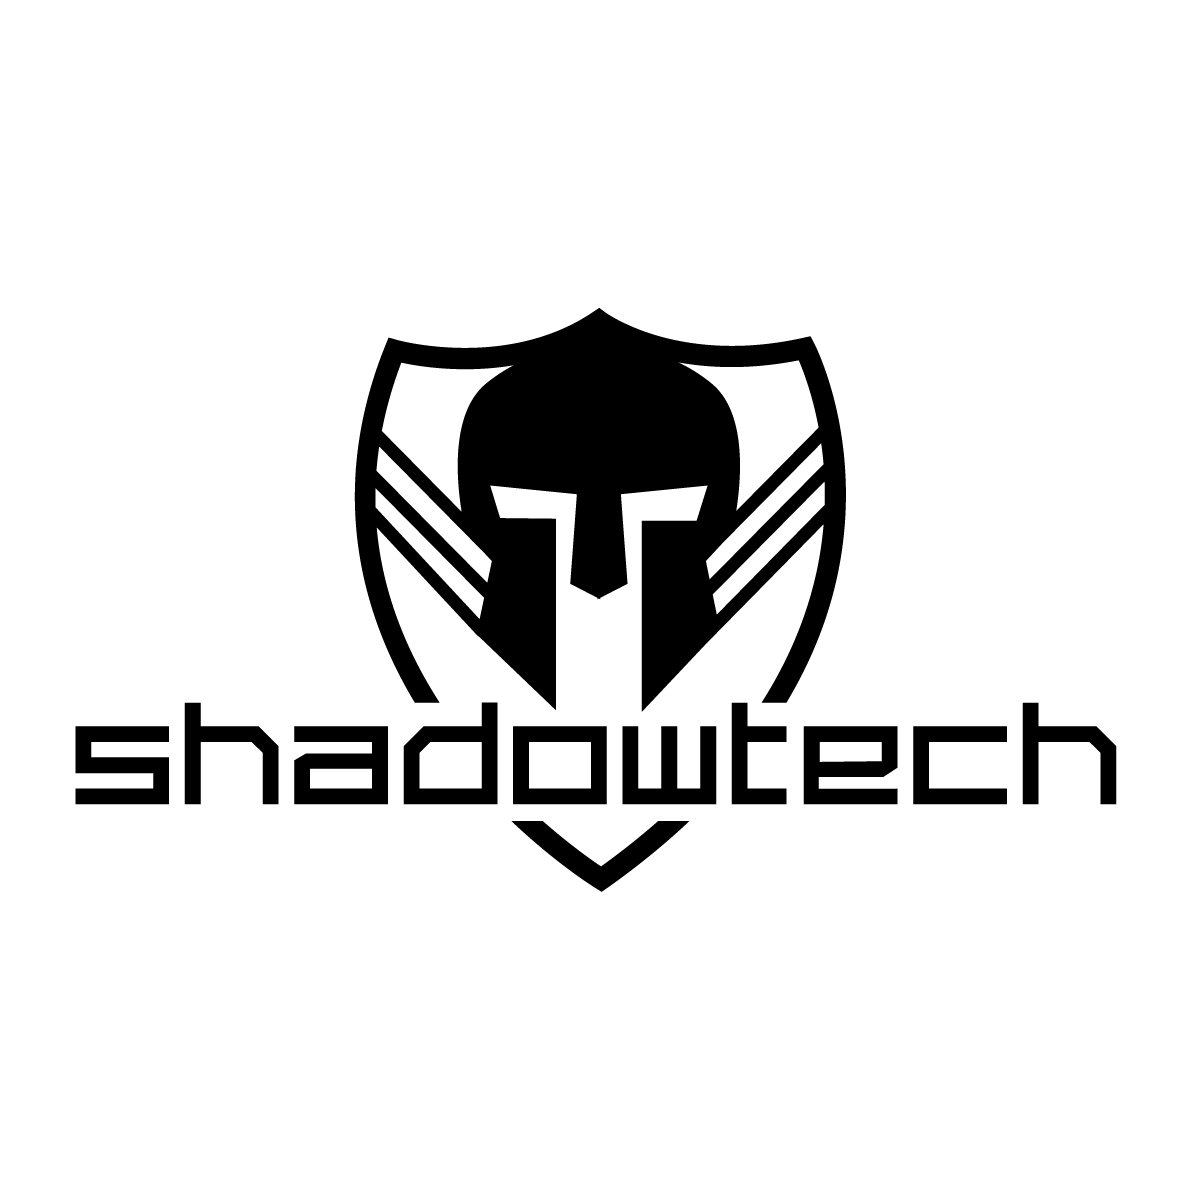 shadowtech3-01.png